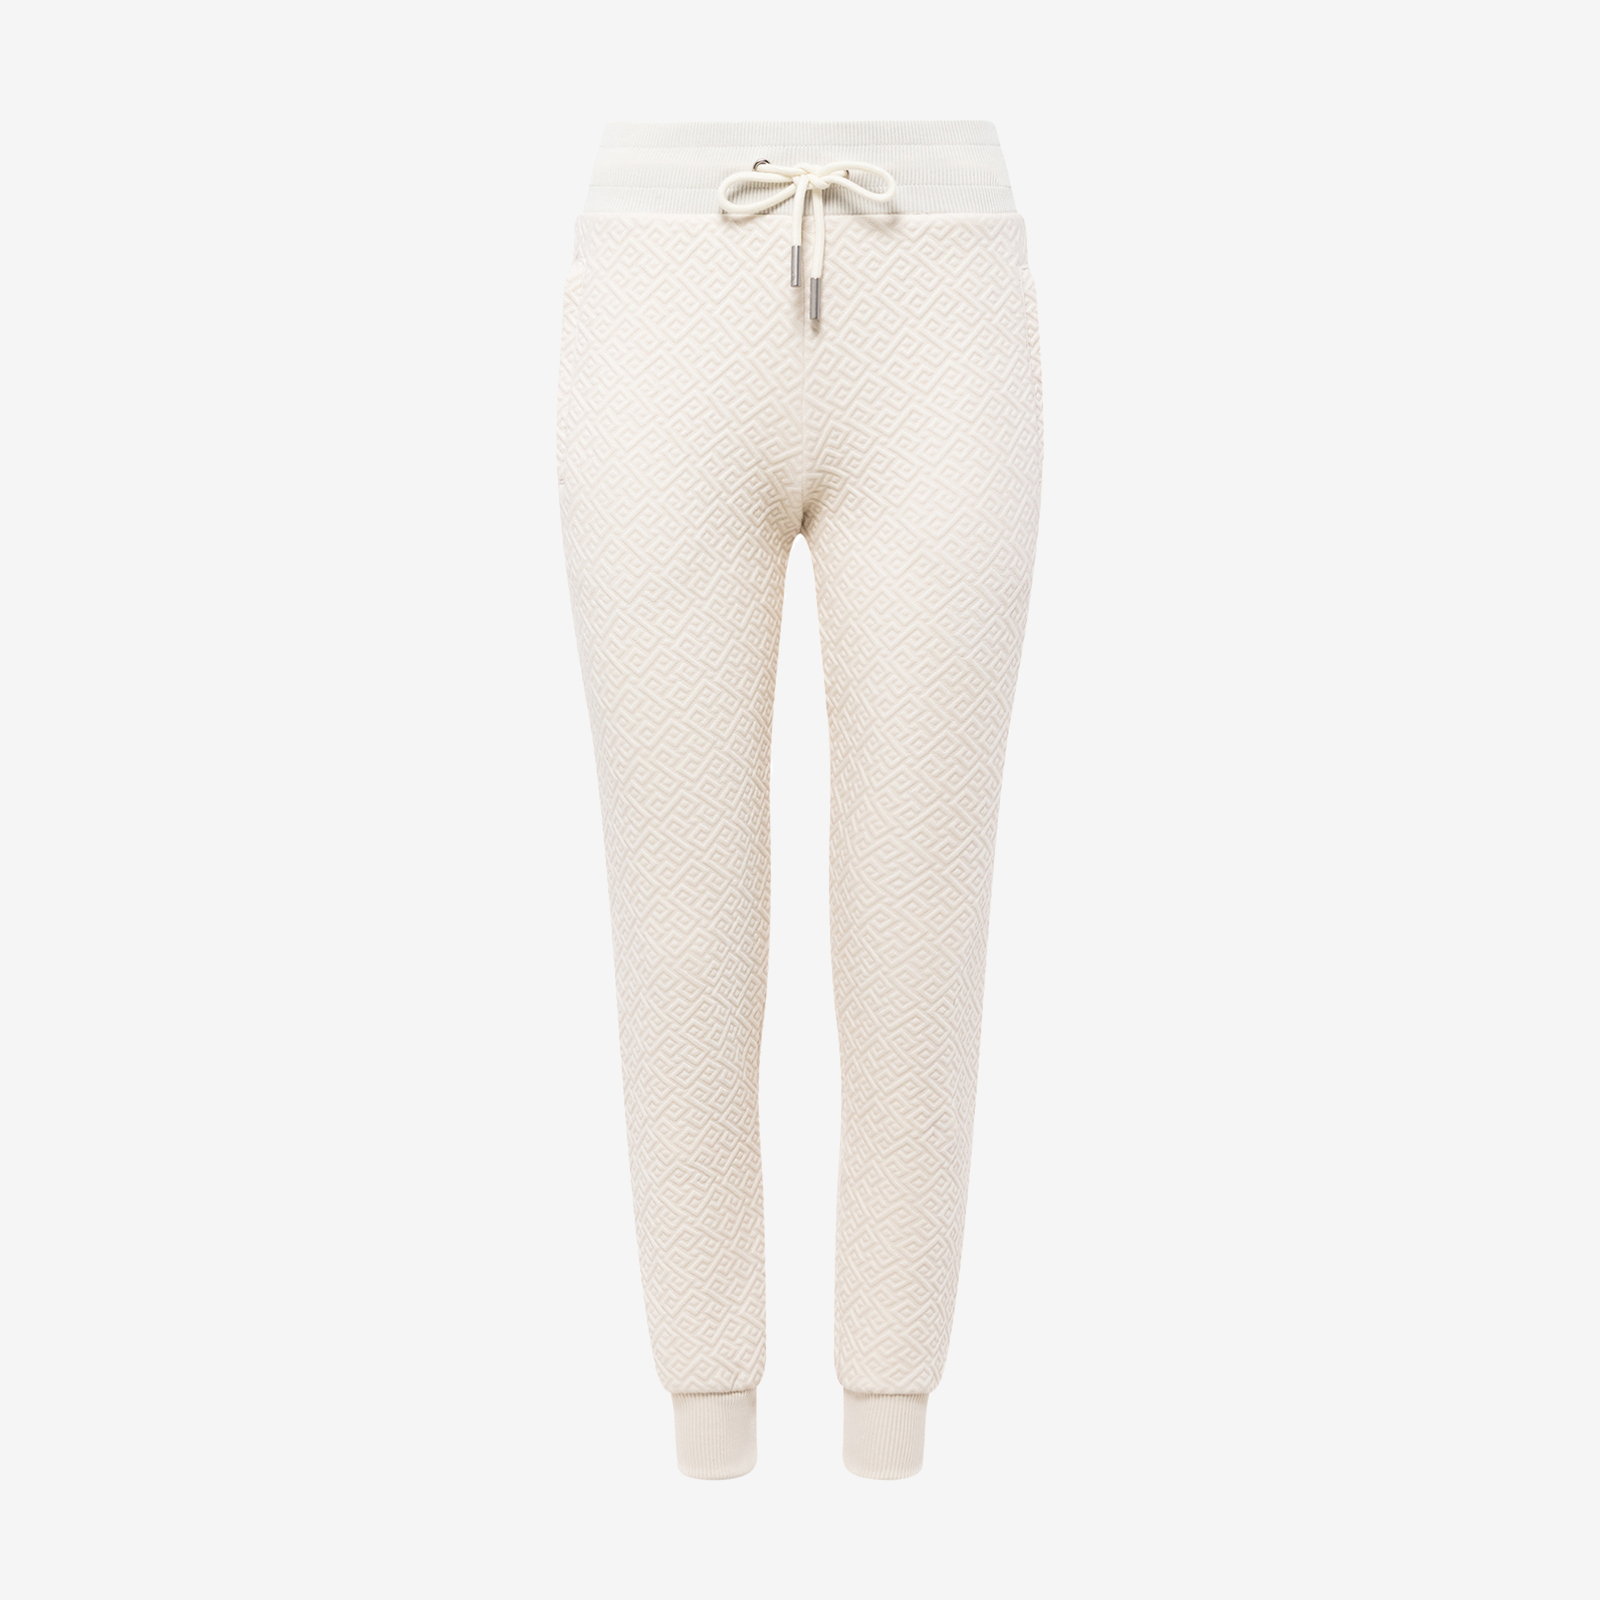 Sports trousers product picture